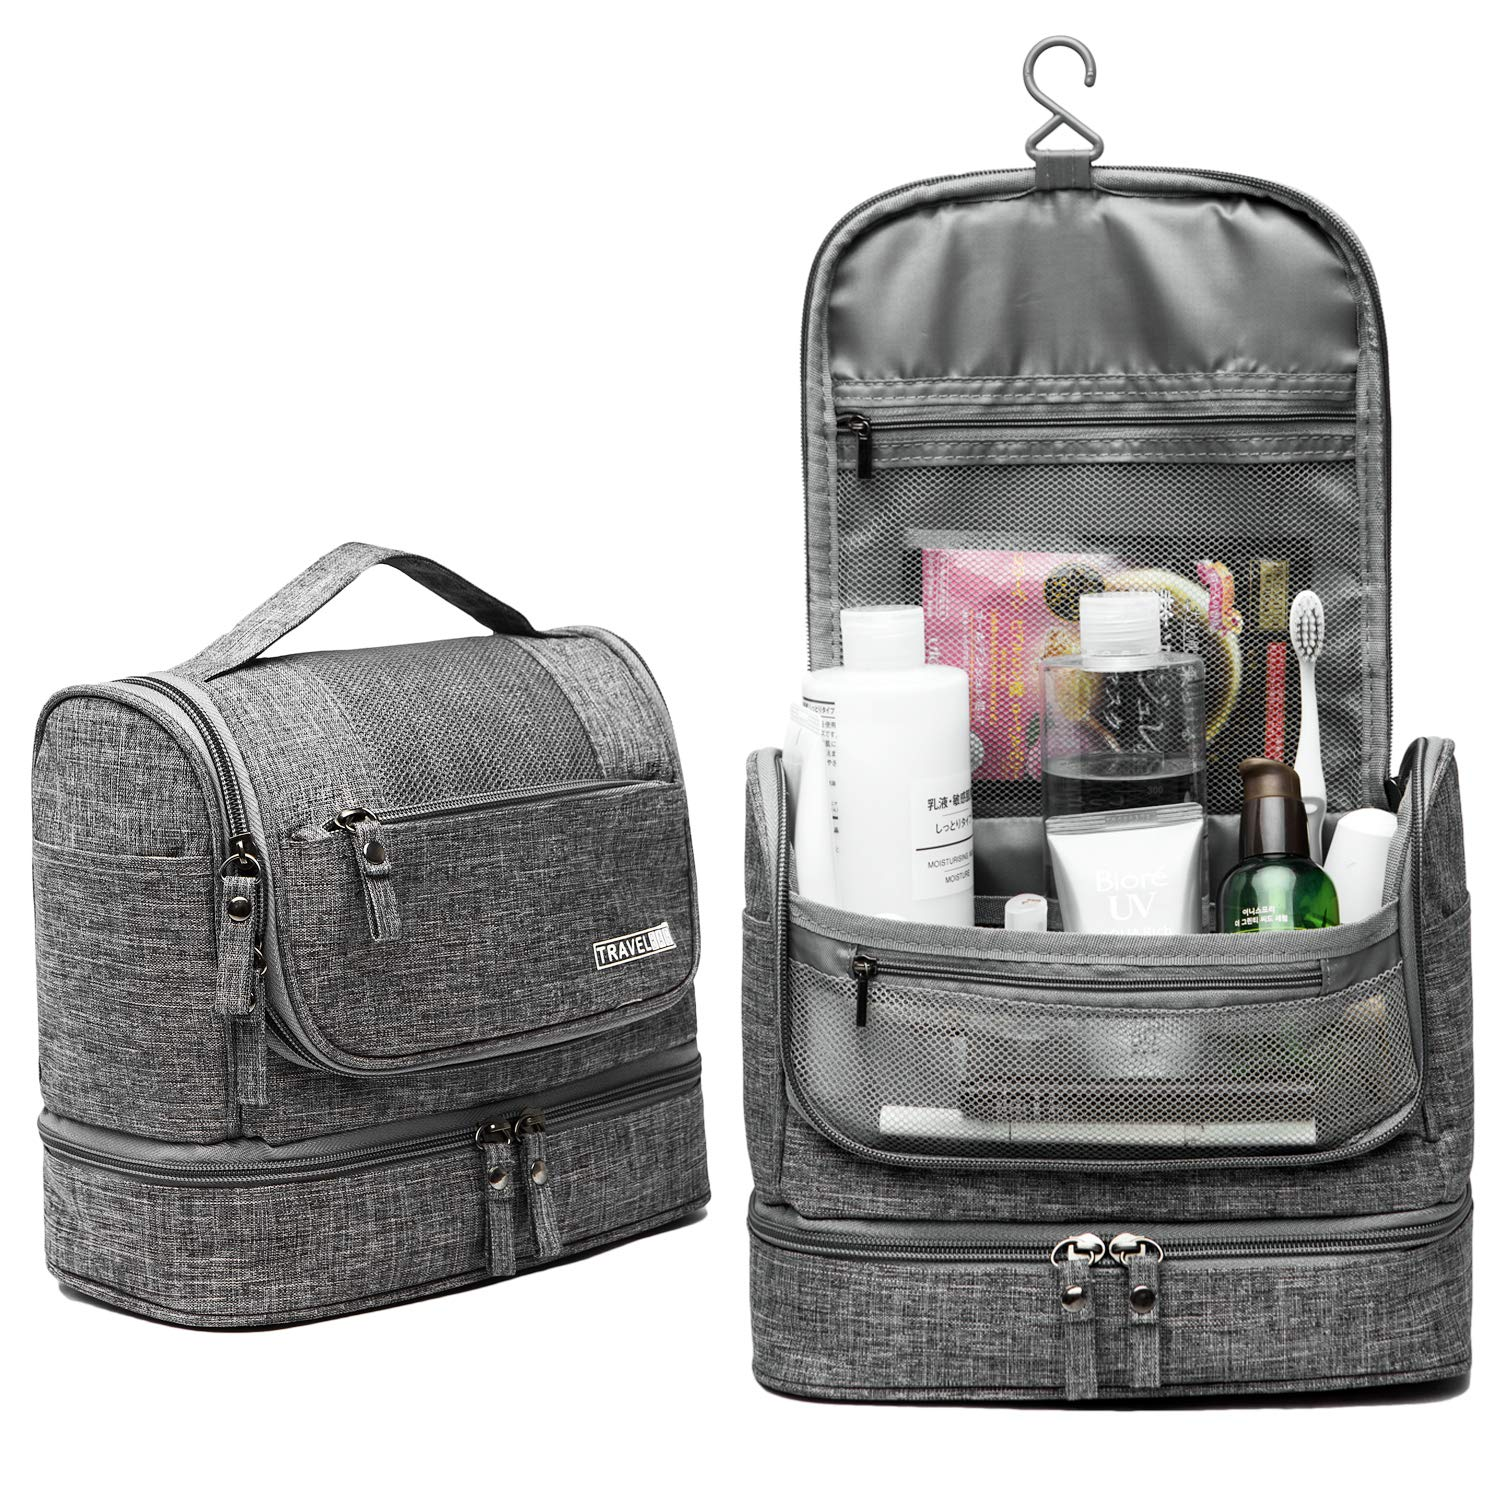 Travel Toiletry Bag, Dry Wet Separation Cosmetic Bag with Hanging Hook – Waterproof Portable Makeup Travel Organizer for Men and Women